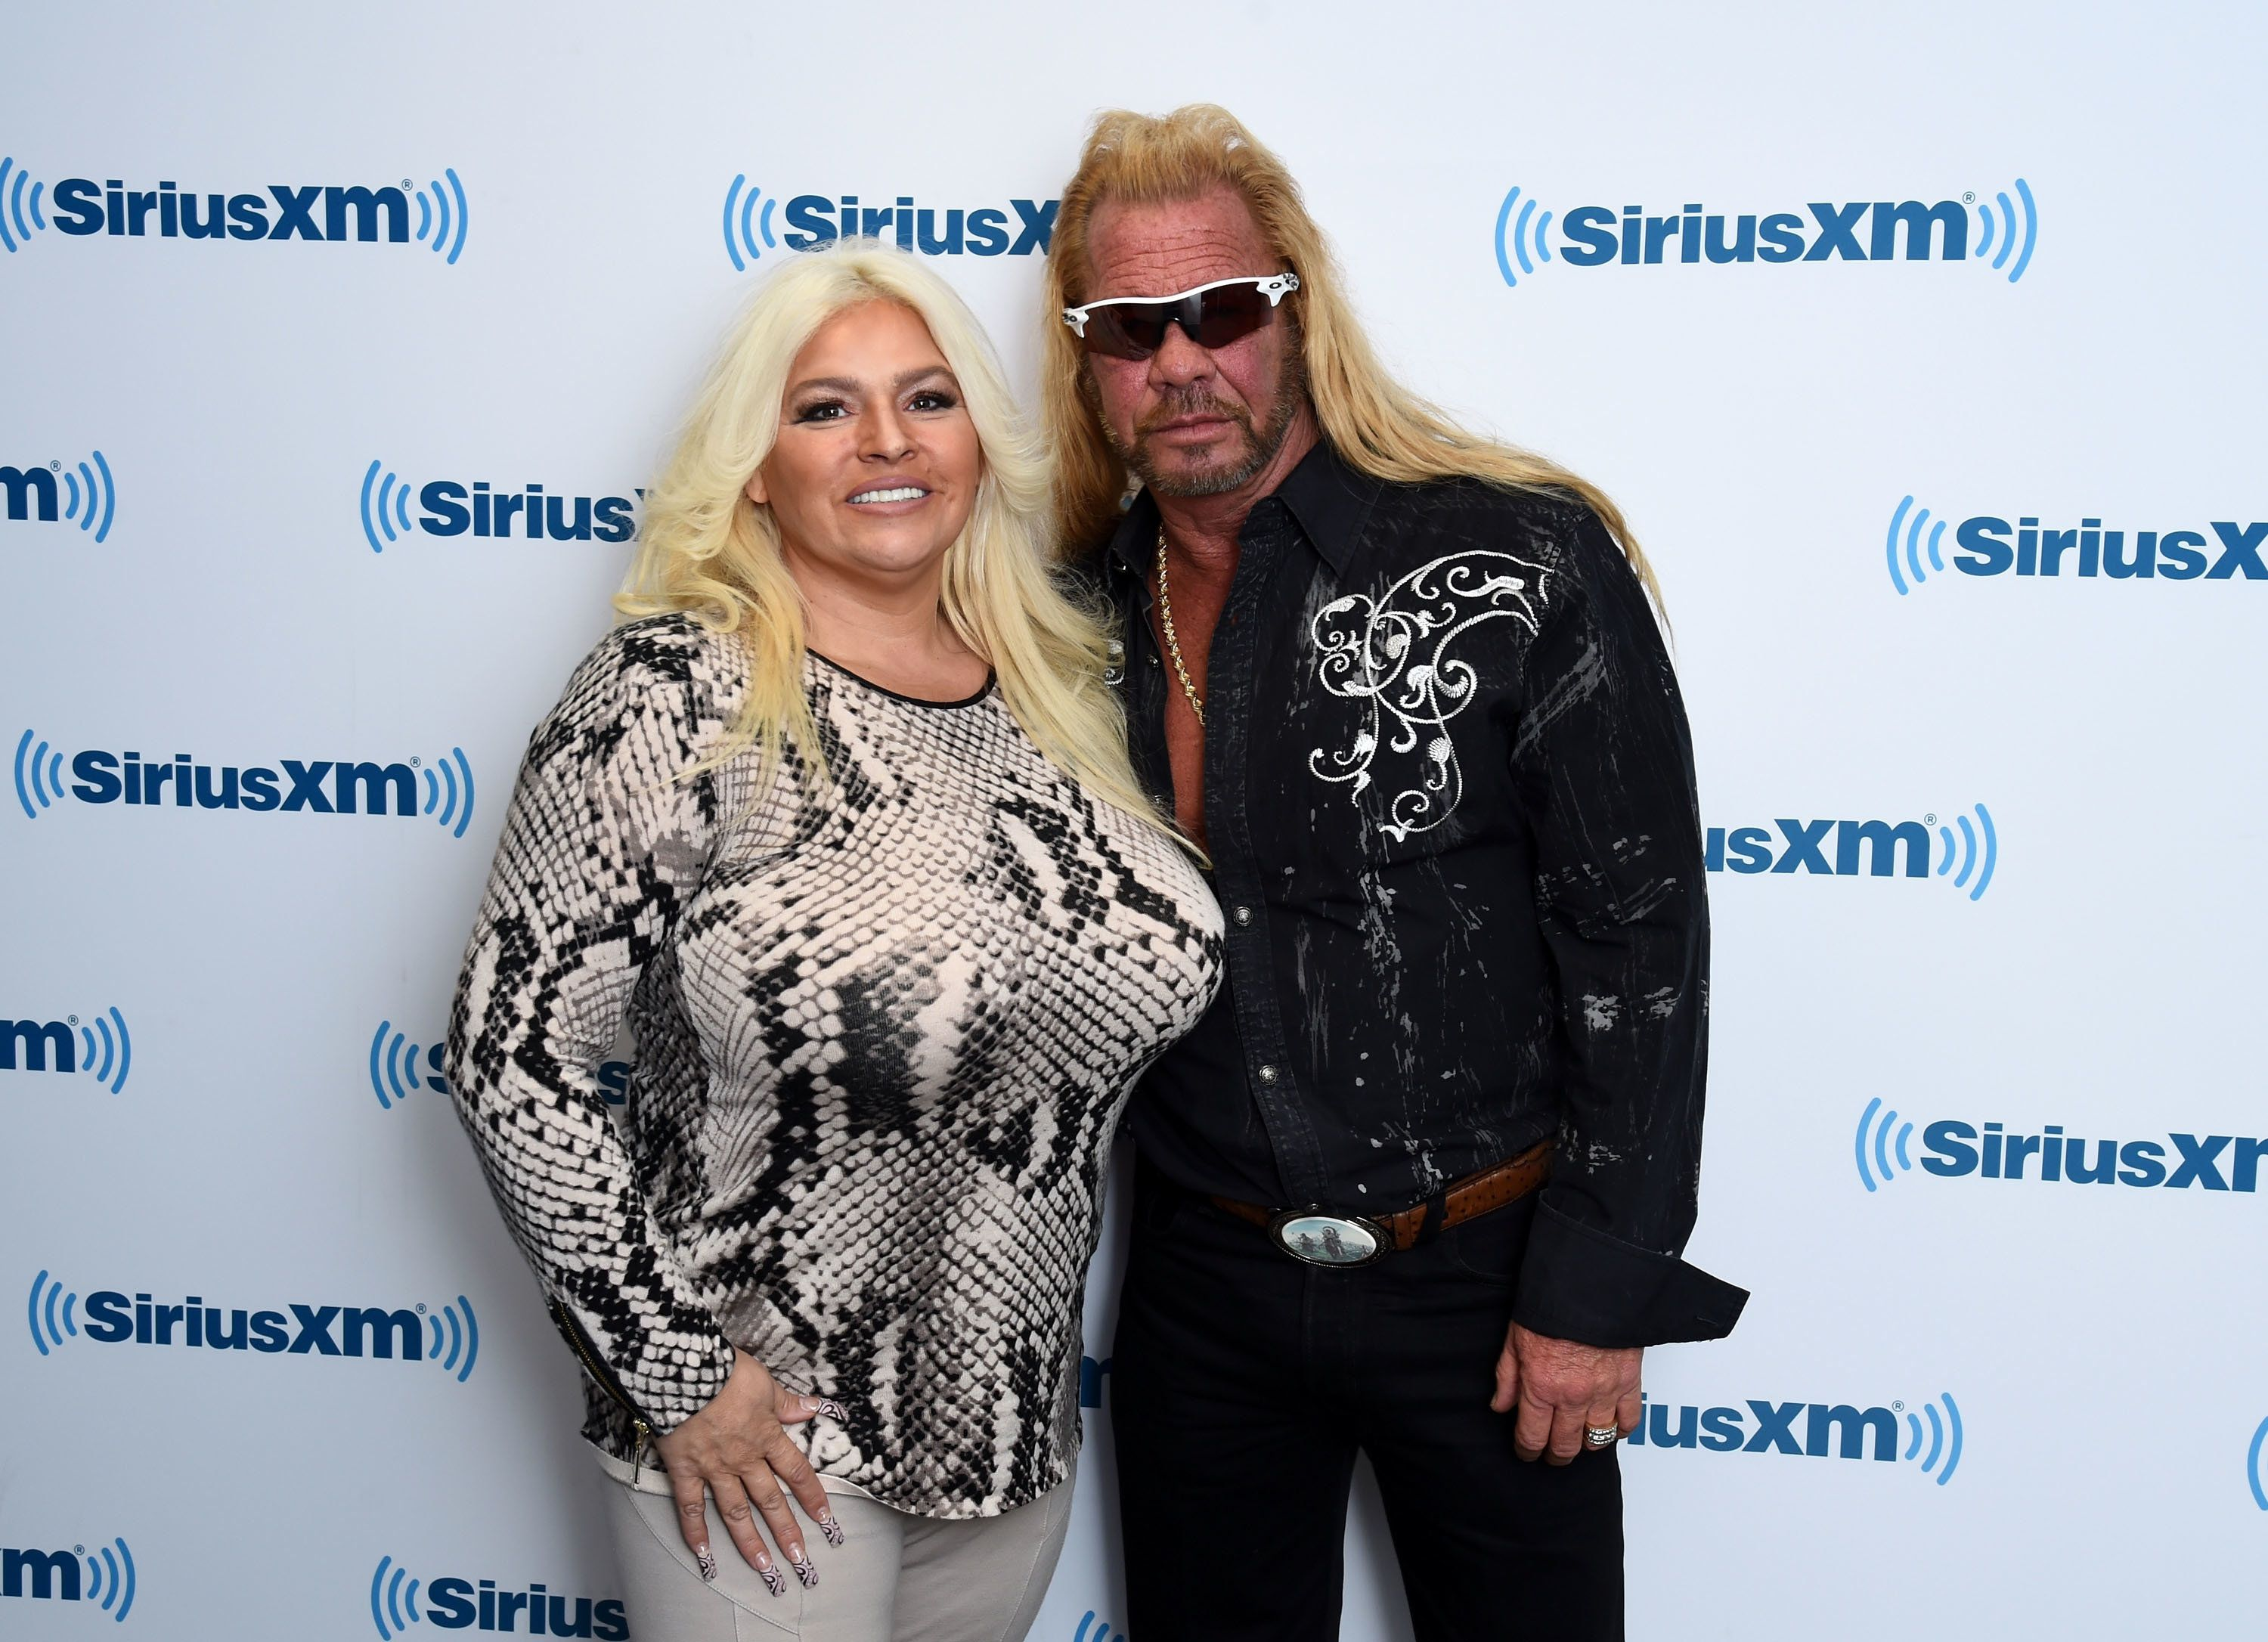 NEW YORK, NY - APRIL 24:  Beth Chapman and Dog the Bounty Hunter, Duane Chapman visits the SiriusXM Studios on April 24, 2015 in New York City.  (Photo by Ilya S. Savenok/Getty Images)